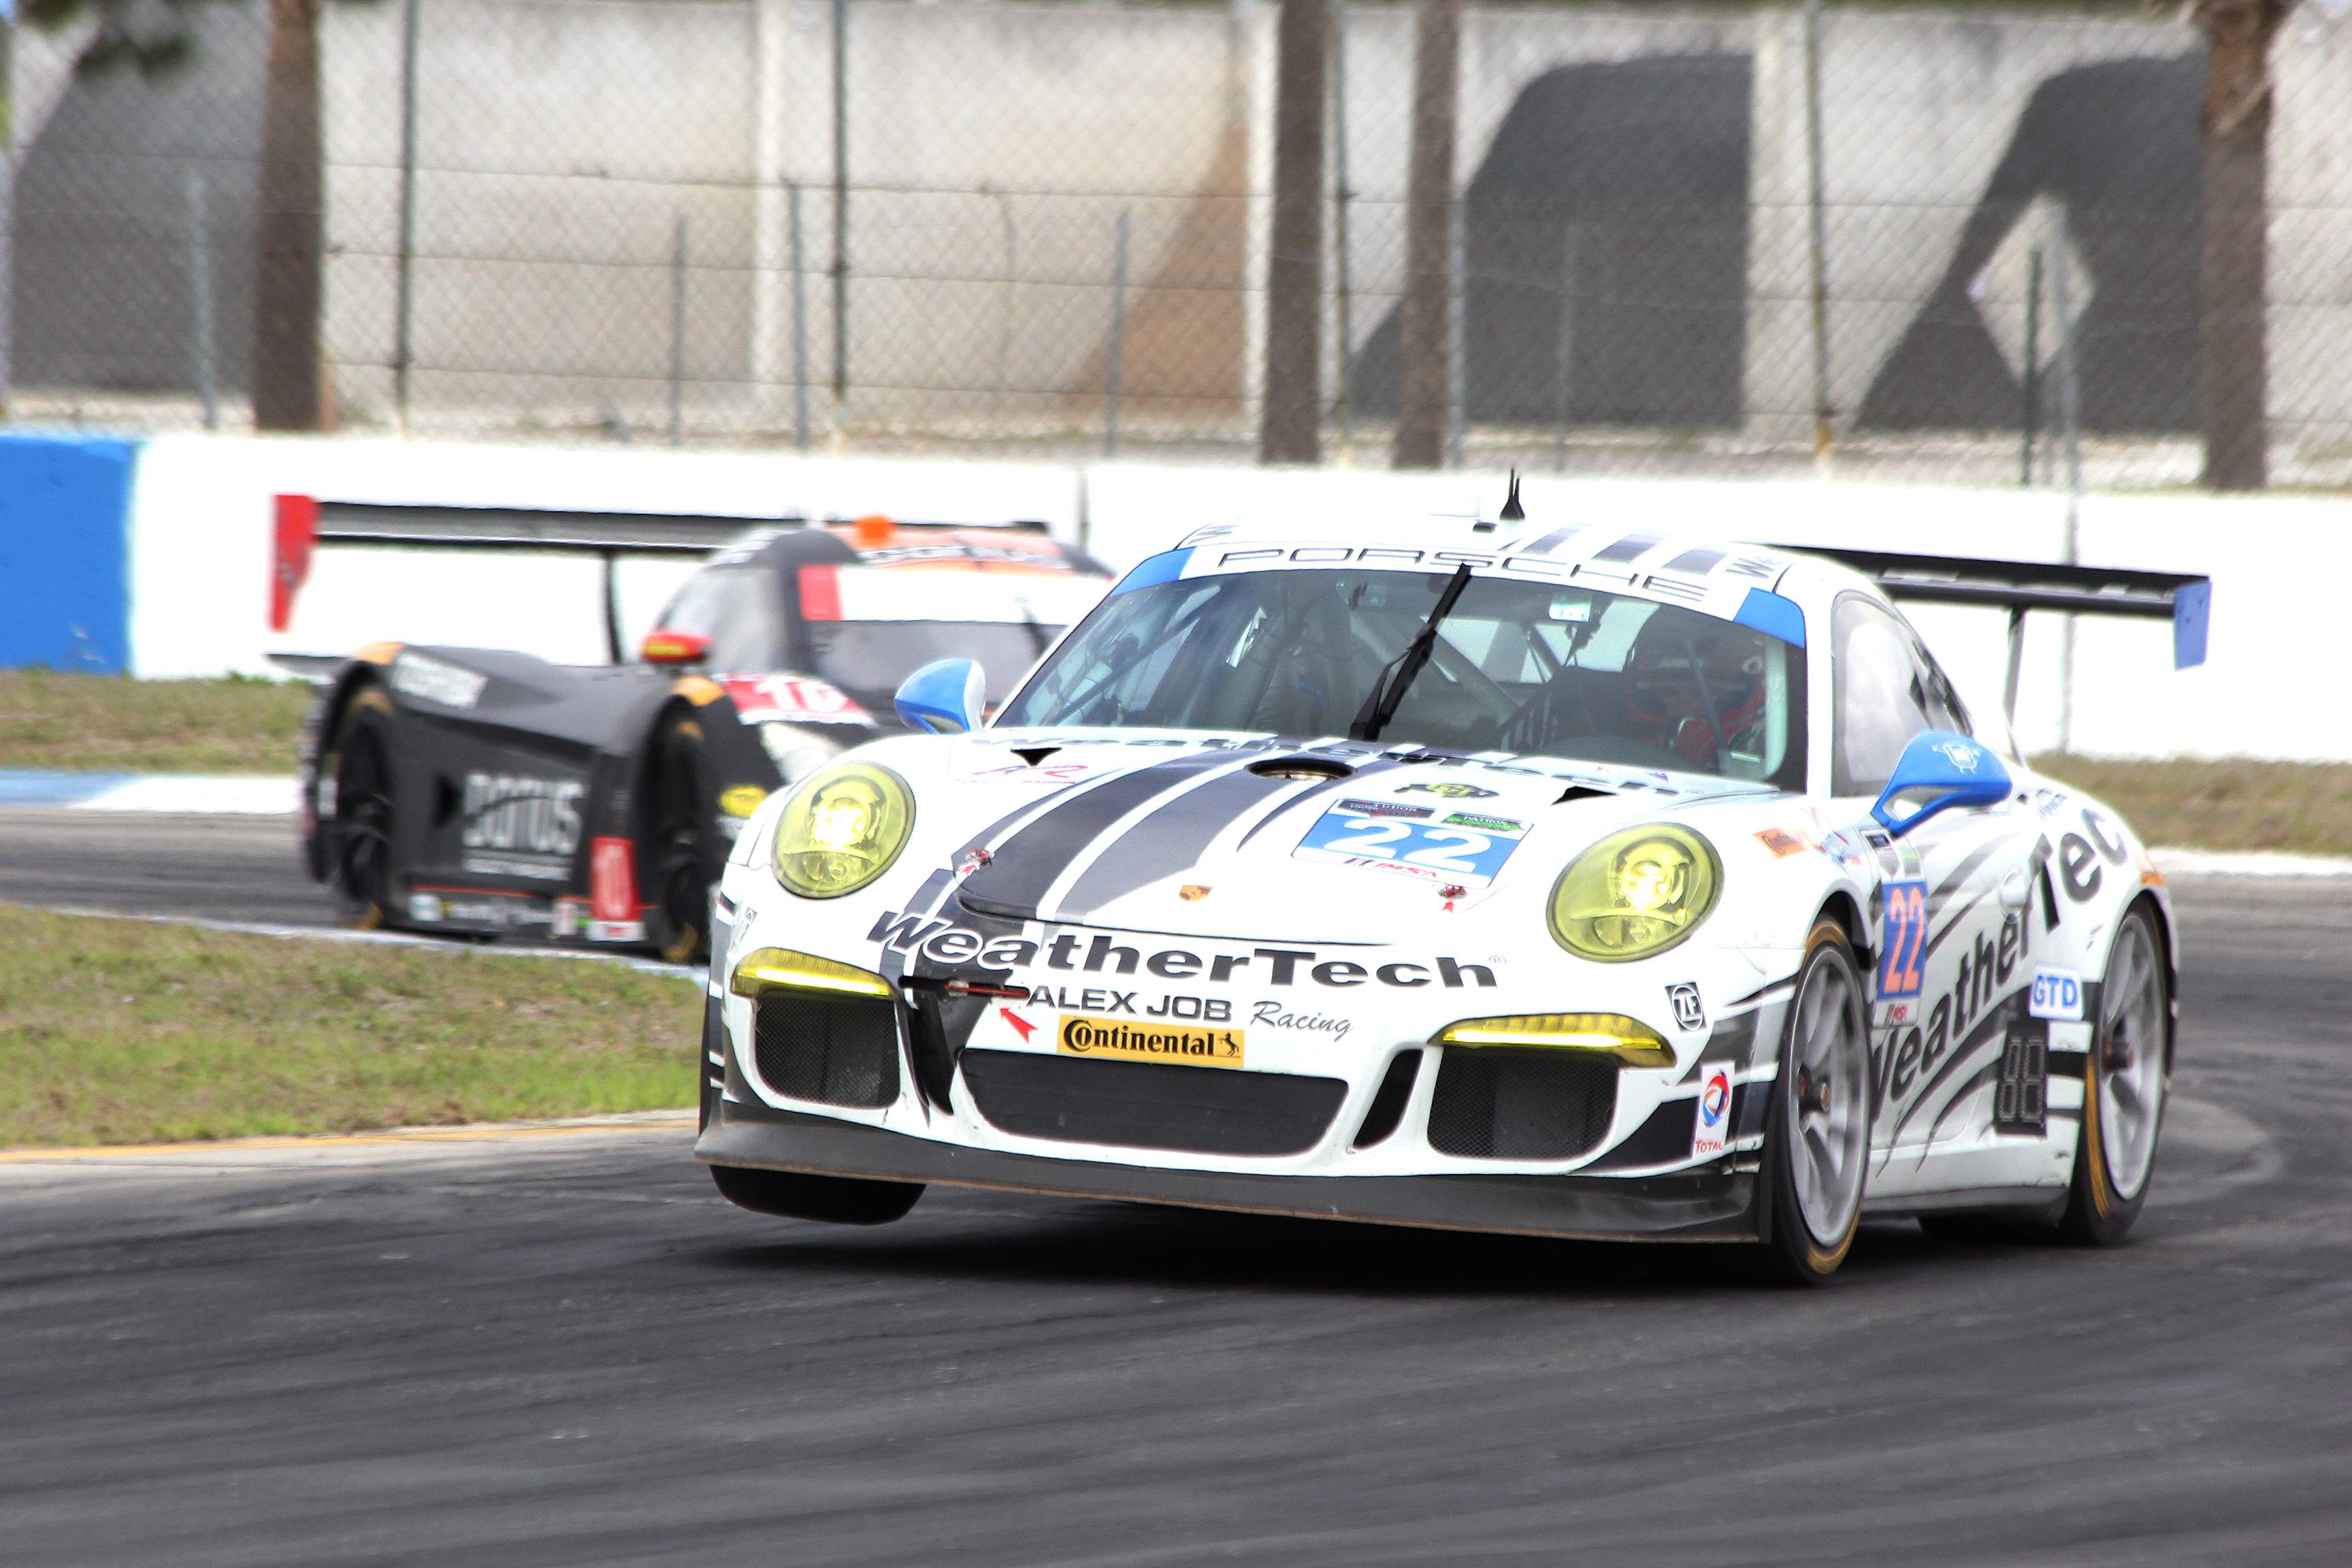 The #23 Alex Job Porsche tries to wheelie around Turn Ten. (Chris Jasurek/Epoch Times)